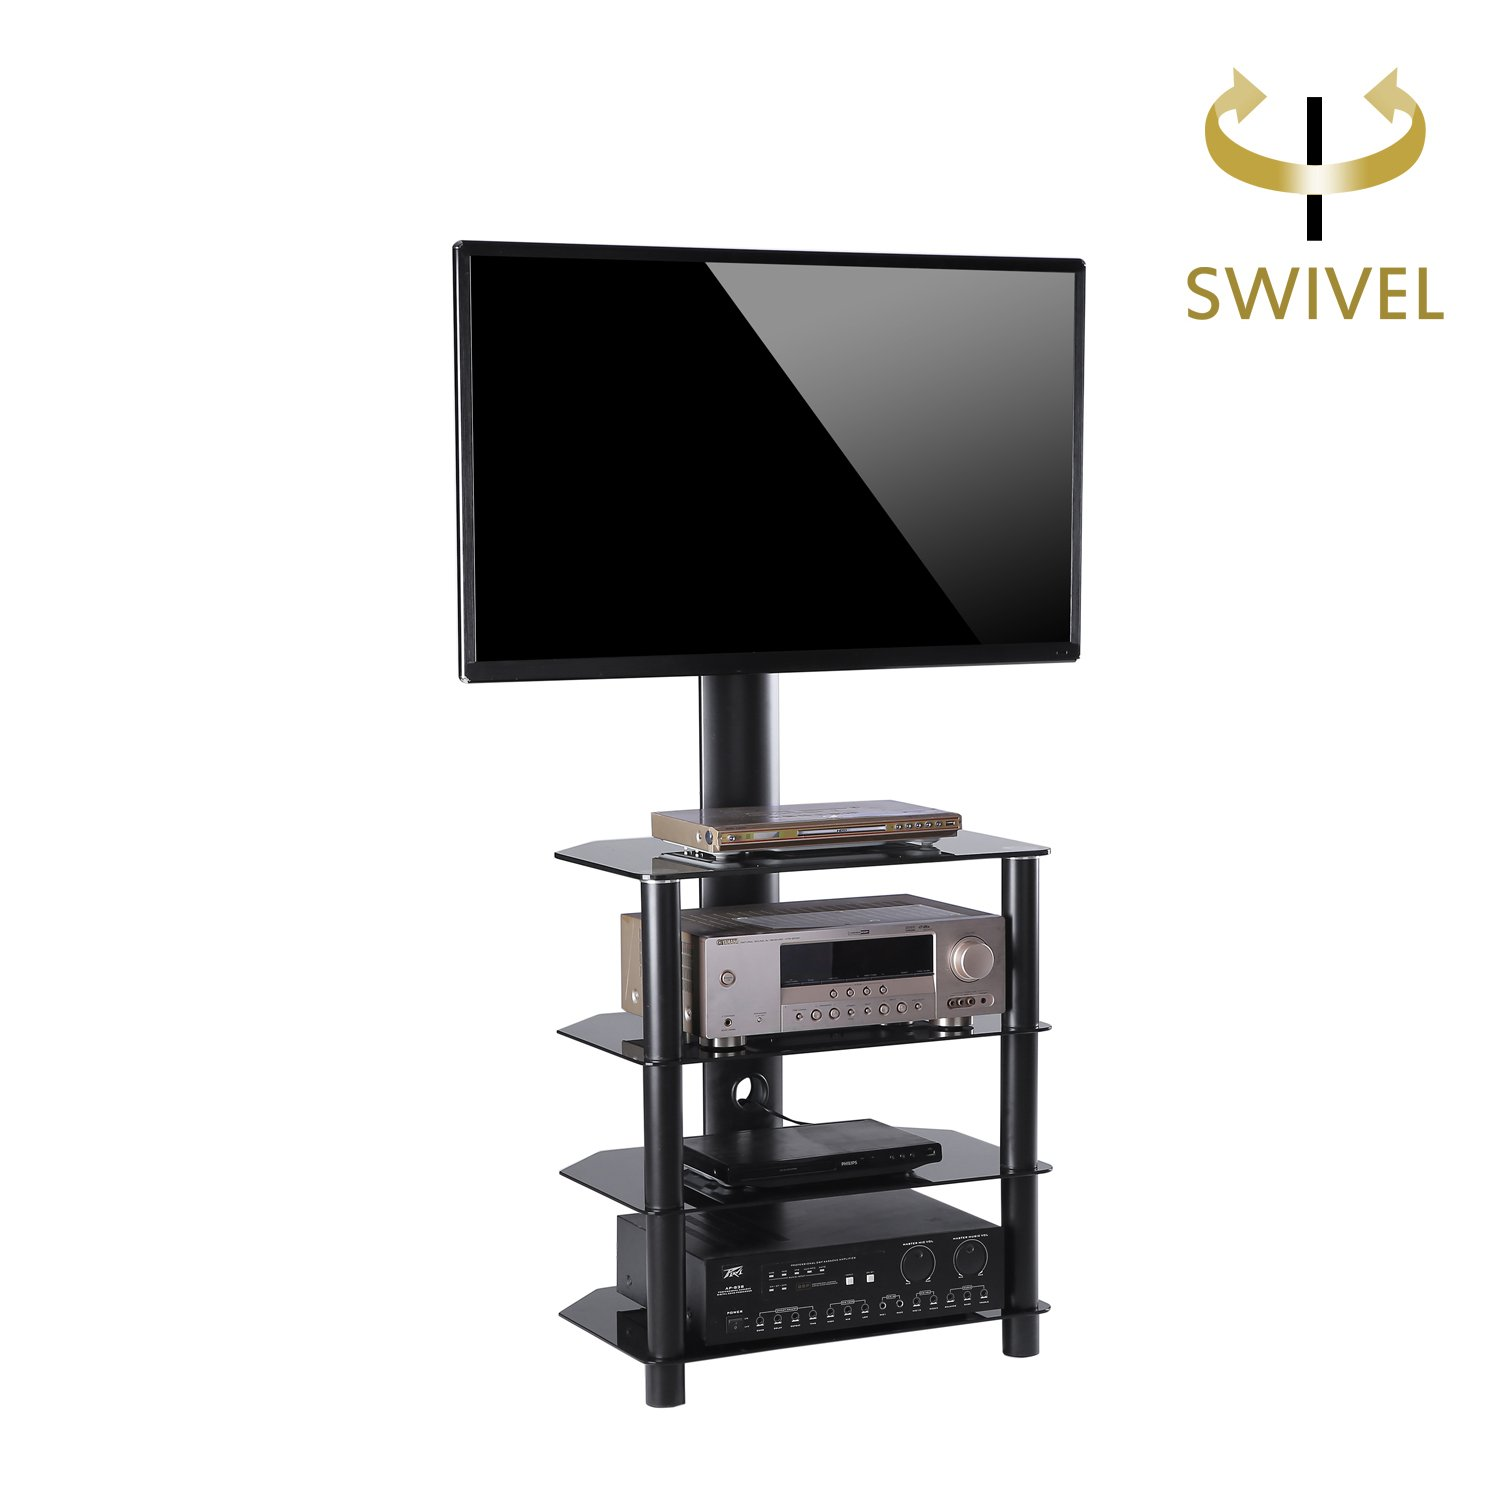 TAVR 4-tiers Media Component TV Stand with Mount Audio Shelf and Height Adjustable Bracket Suit for 32-55 inch LCD, LED Oled TVs or Curved TVs TW1004